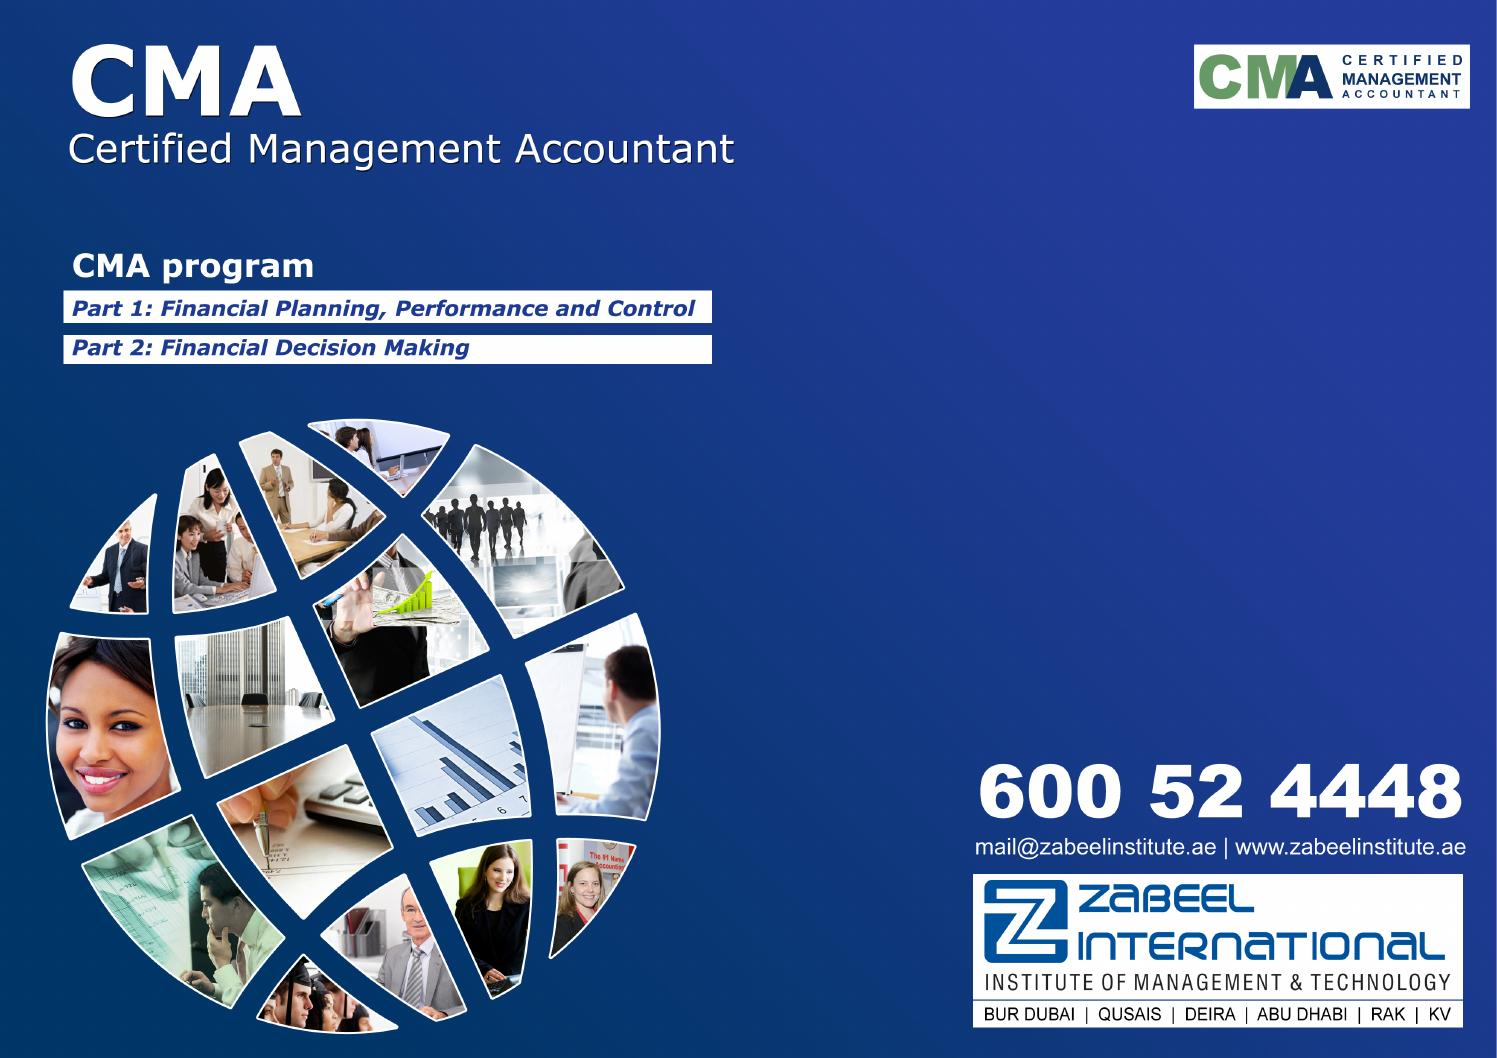 Certified management accountant cma course brochure by zabeel certified management accountant cma course brochure by zabeel international institute of management technology issuu 1betcityfo Image collections